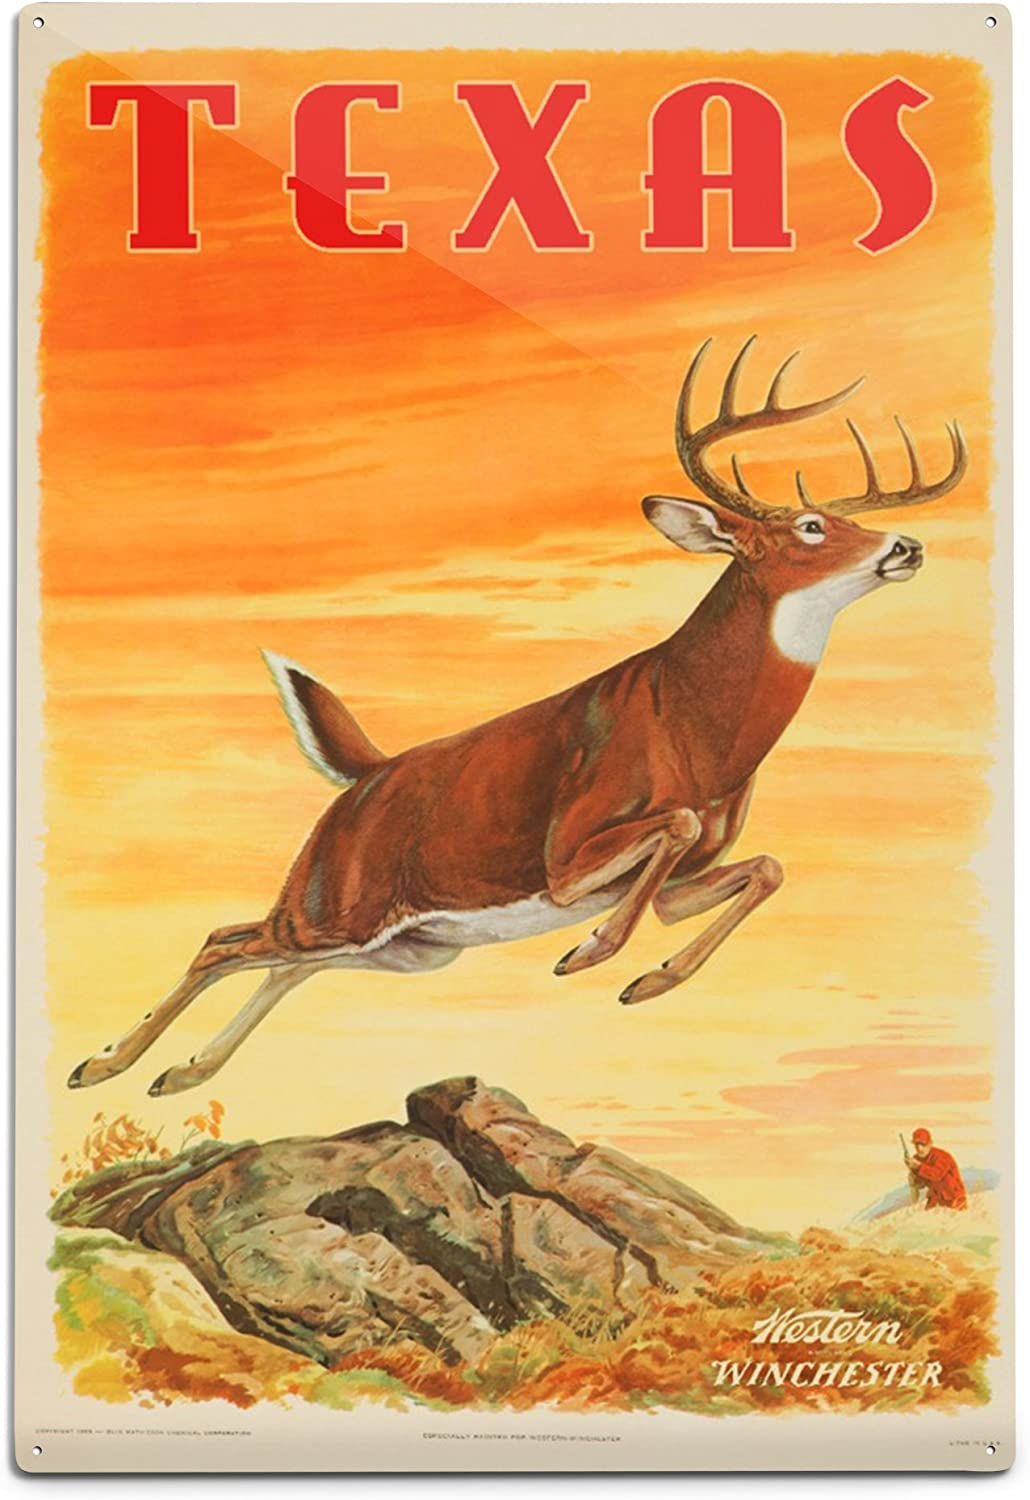 Texas Western Winchester Deer Vintage Poster Artist Pursell And Woods Usa C 1955 12x18 Art Print Wall Decor Travel Poster Posters Prints